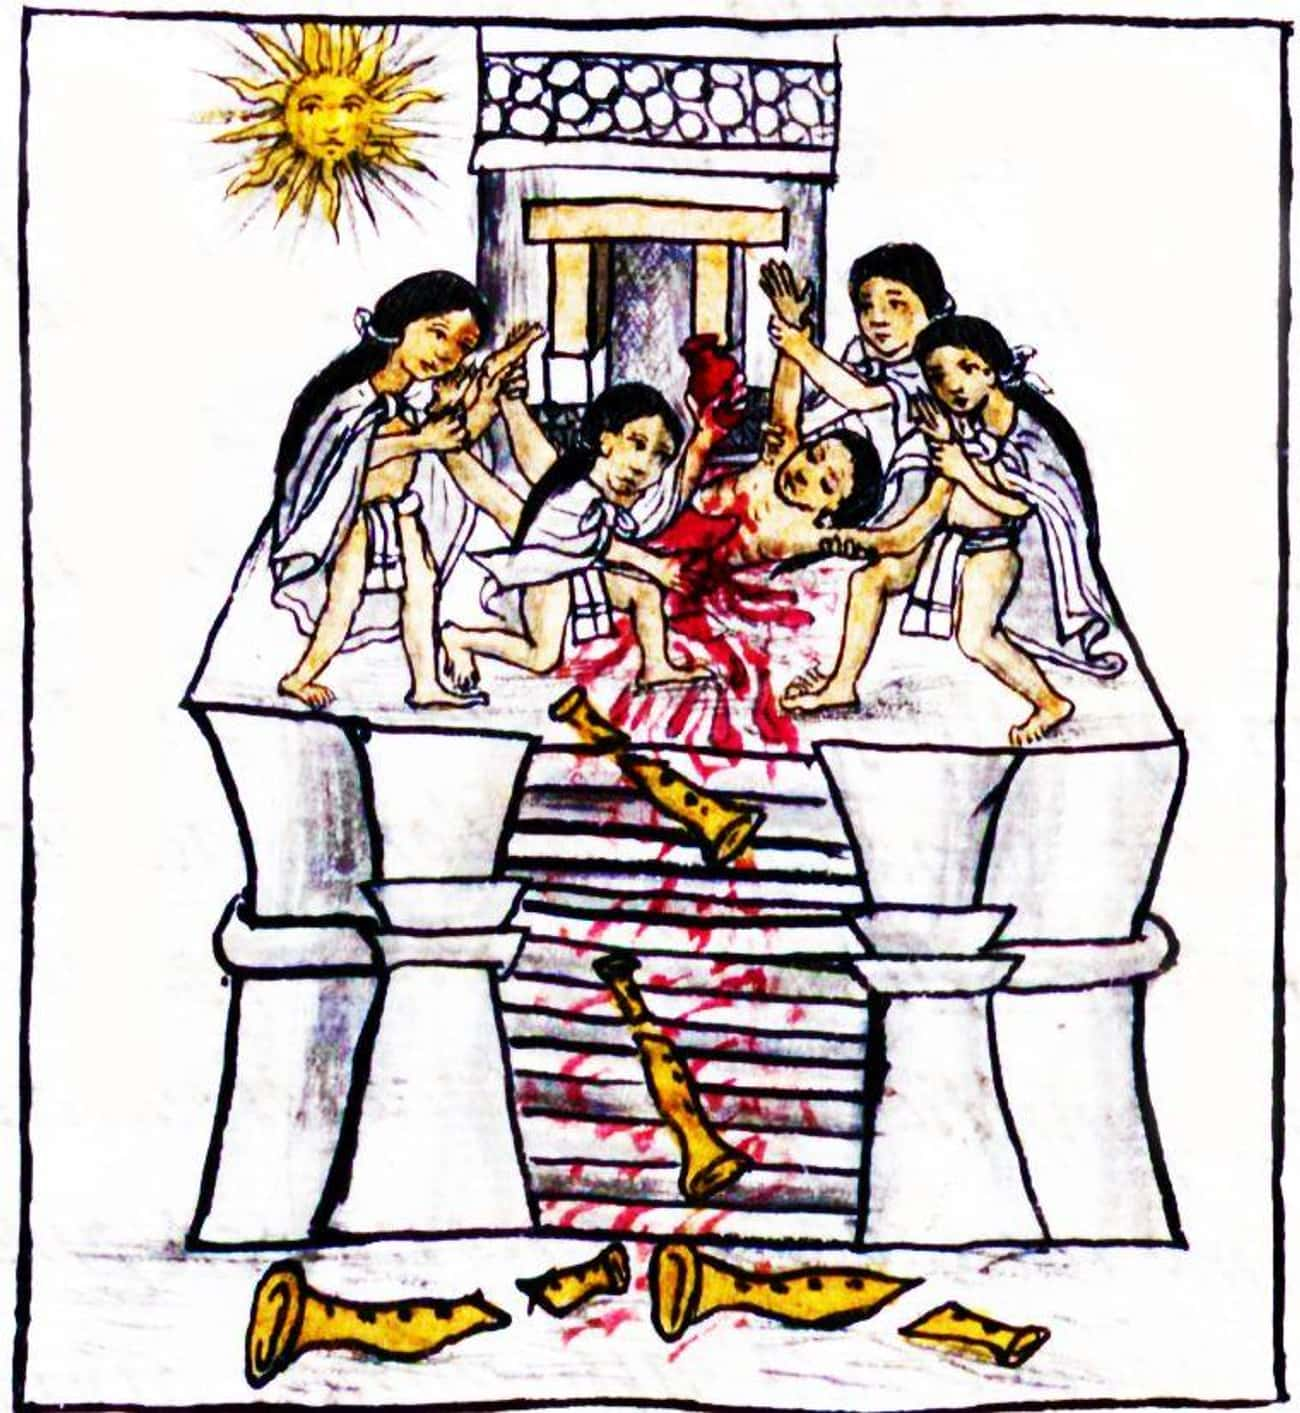 Huitzilopochtli Killed A Princ is listed (or ranked) 4 on the list 12 Insanely Violent Stories From Ancient Aztec Mythology